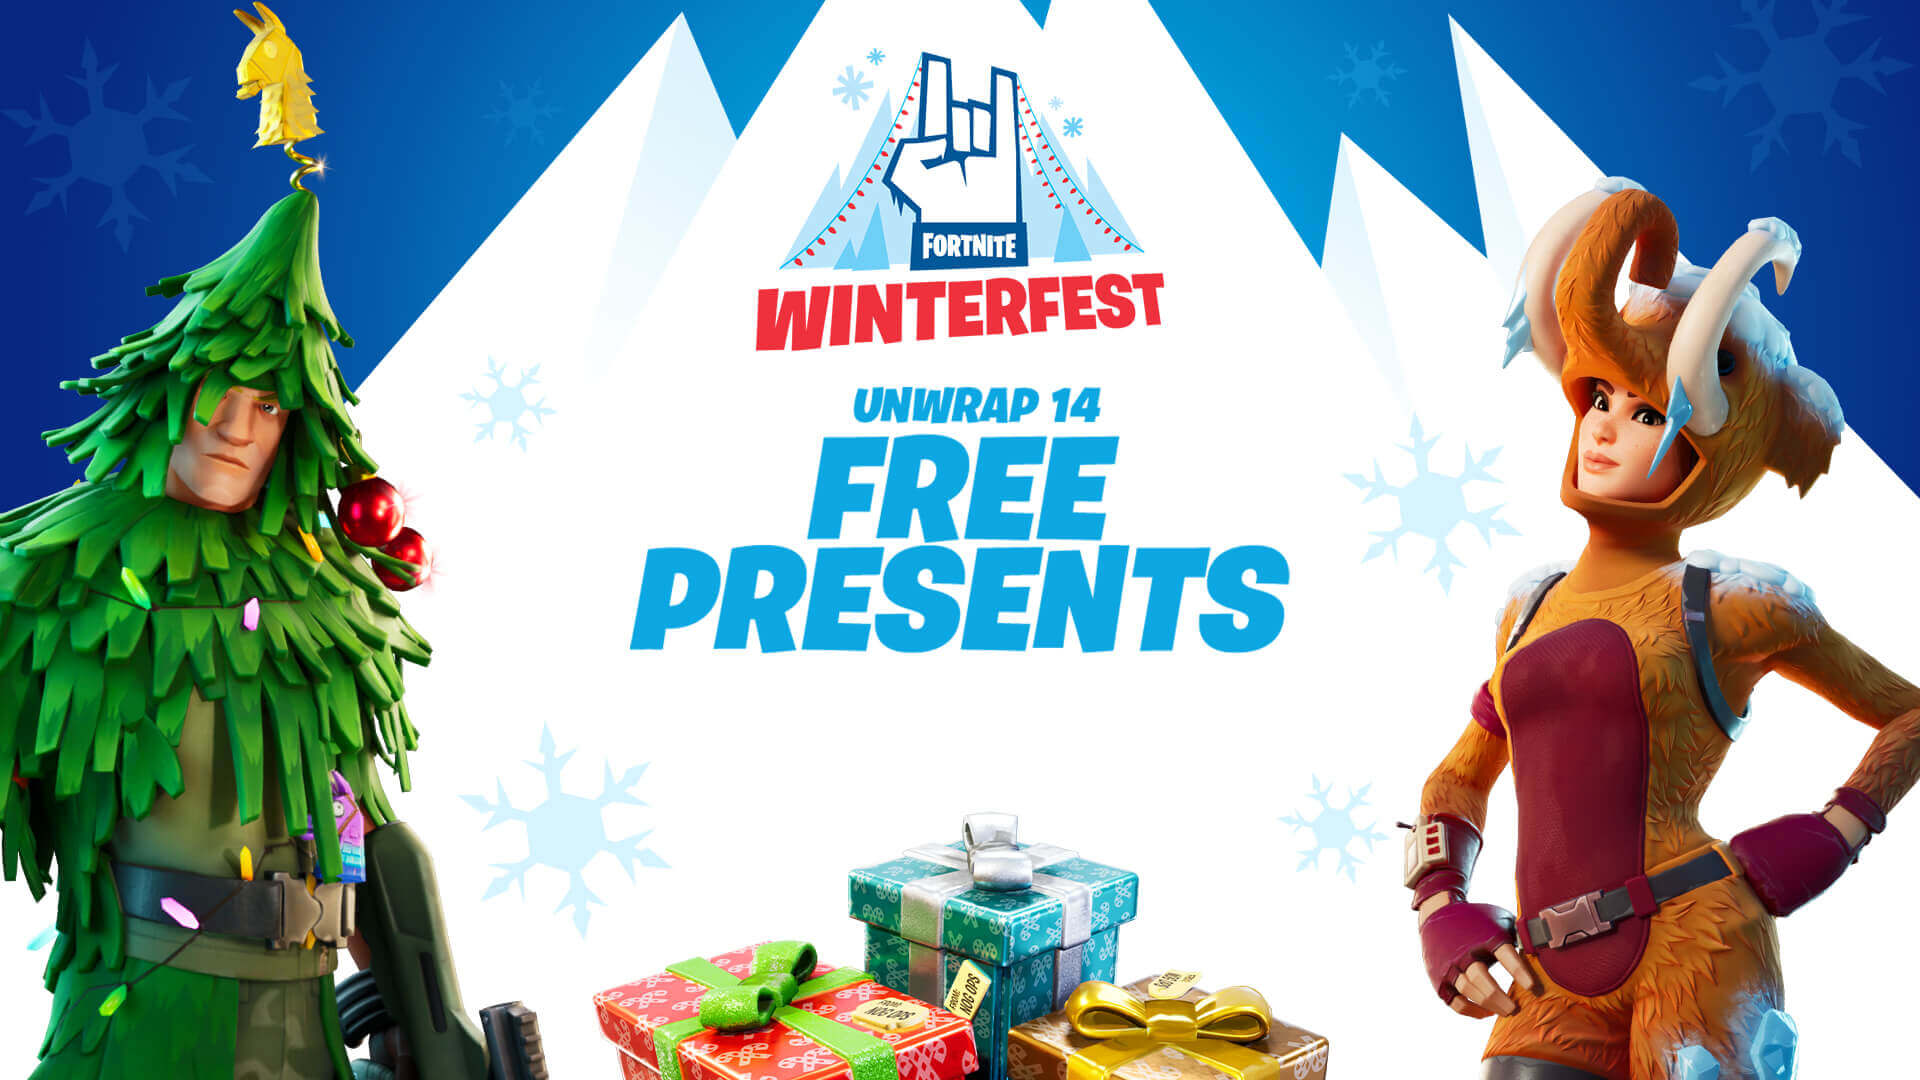 fortnite winterfest presents